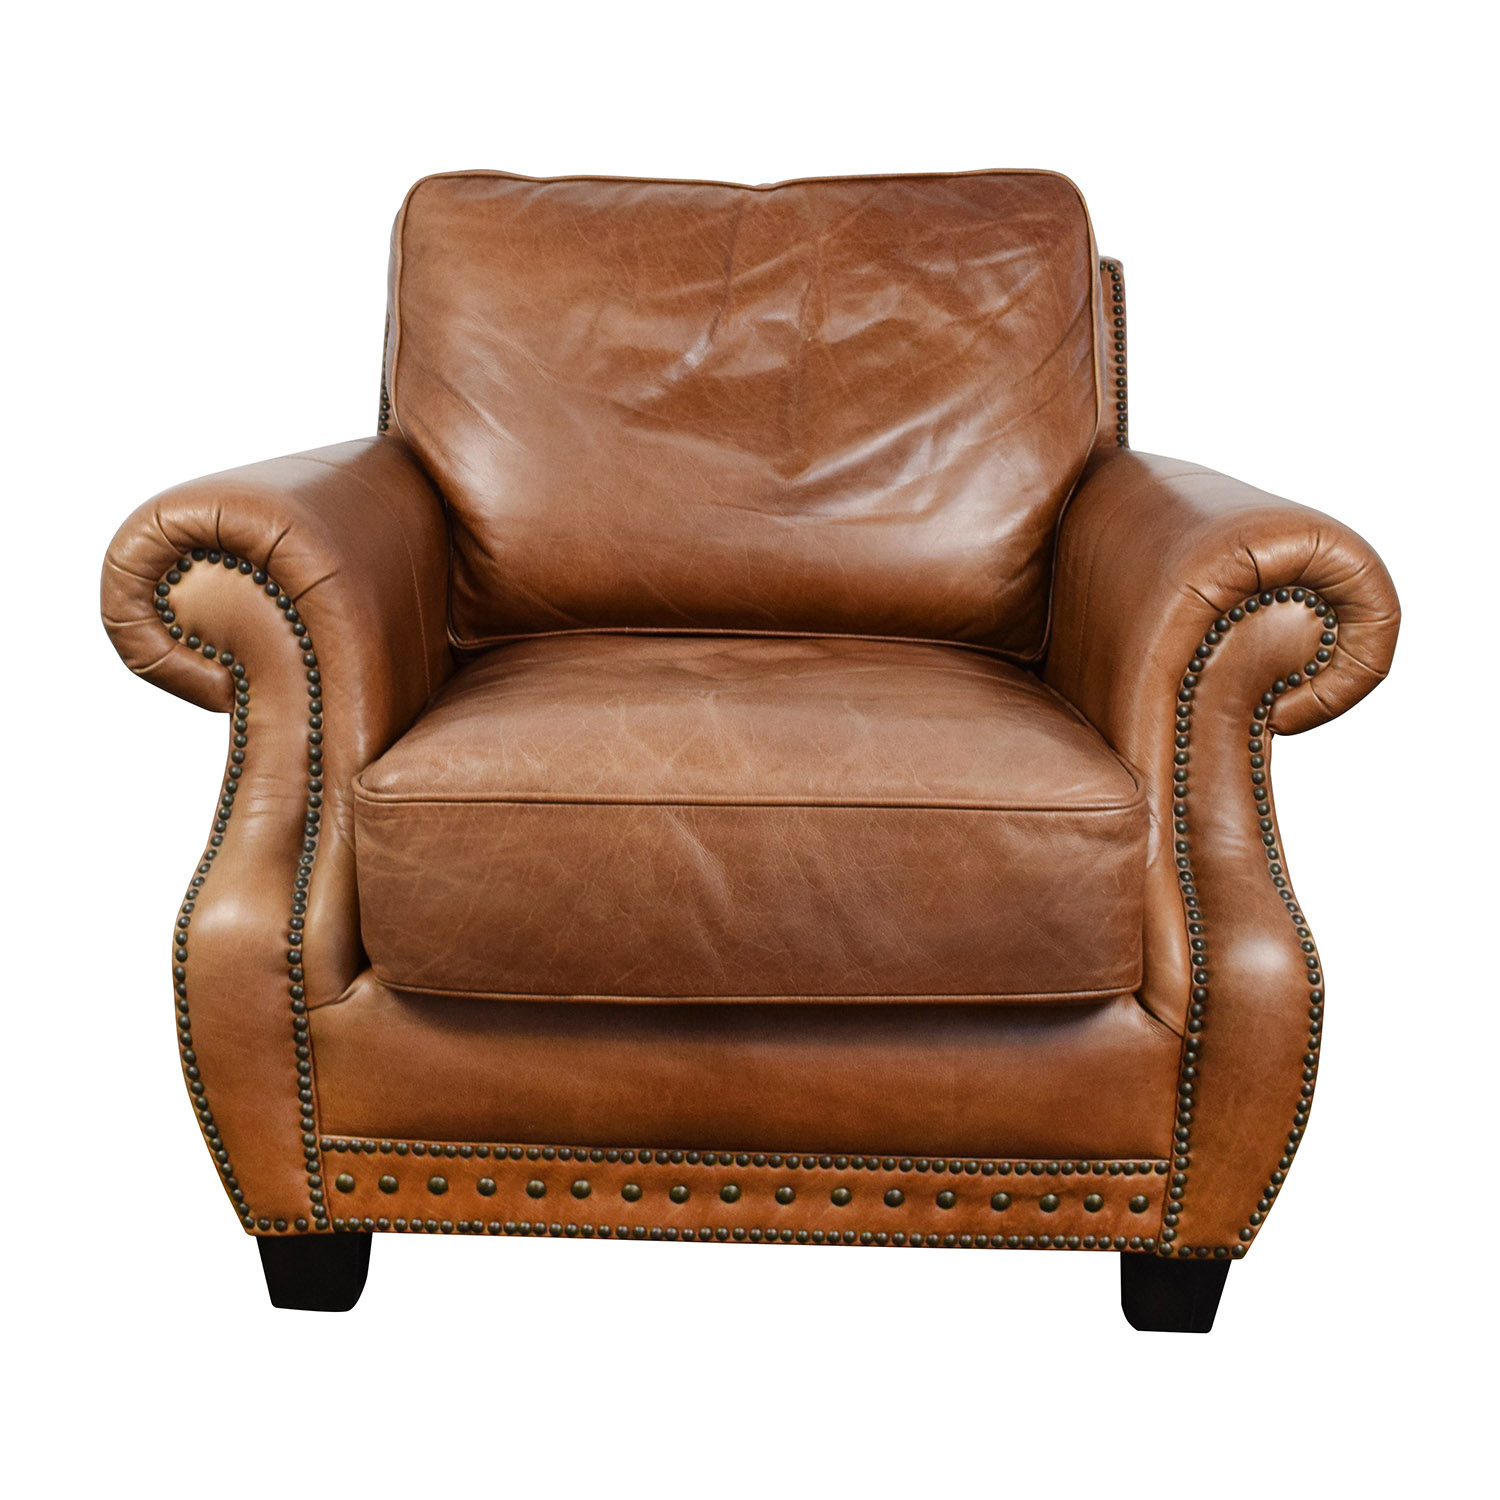 Safavieh Couture Safavieh Couture Brayton Leather Chair price